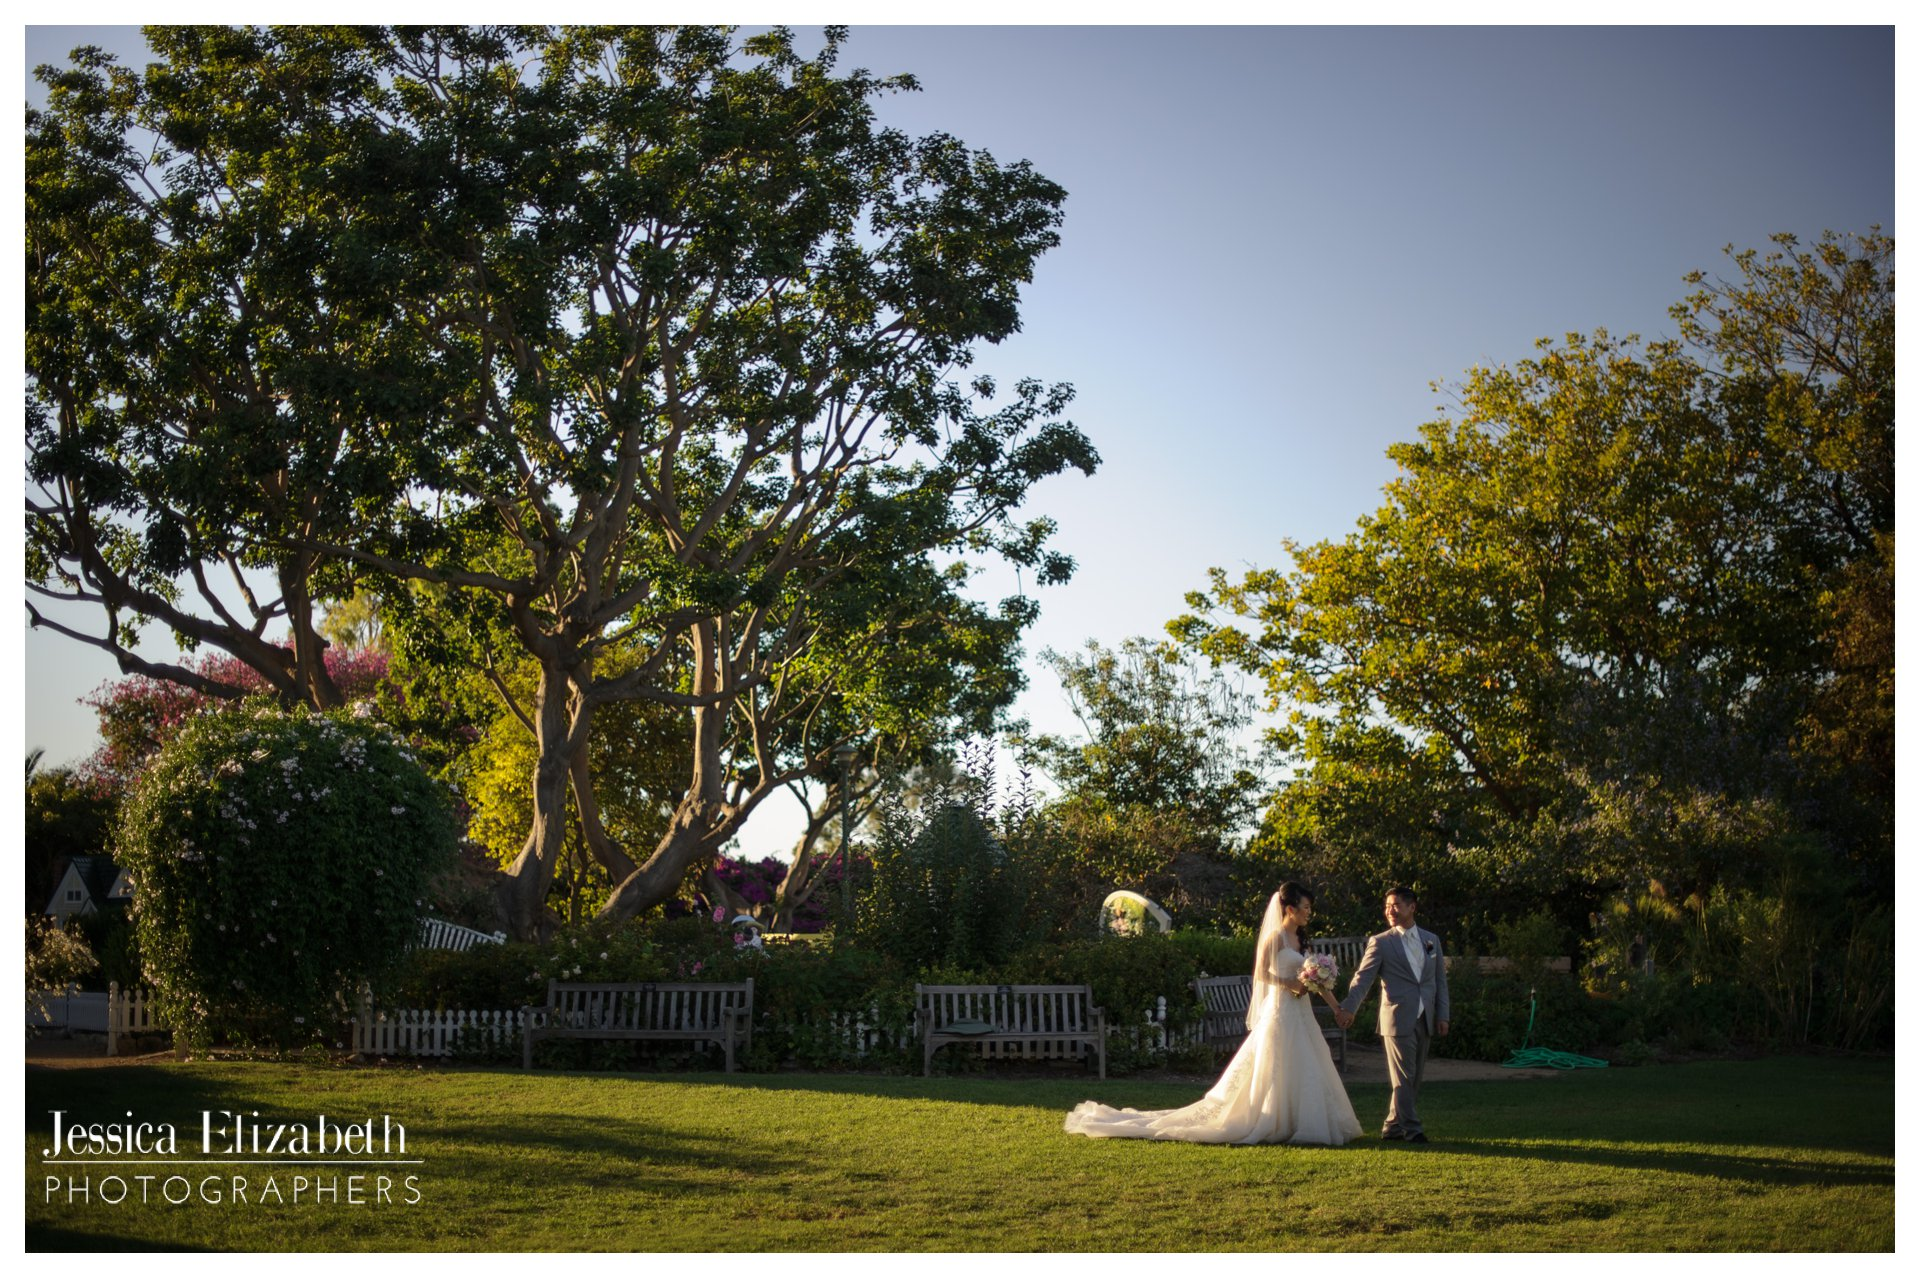 23-South-Coast-Botanic-Garden-Palos-Verdes-Wedding-Photography-by-Jessica-Elizabeth-2.51.26-PM.jpg